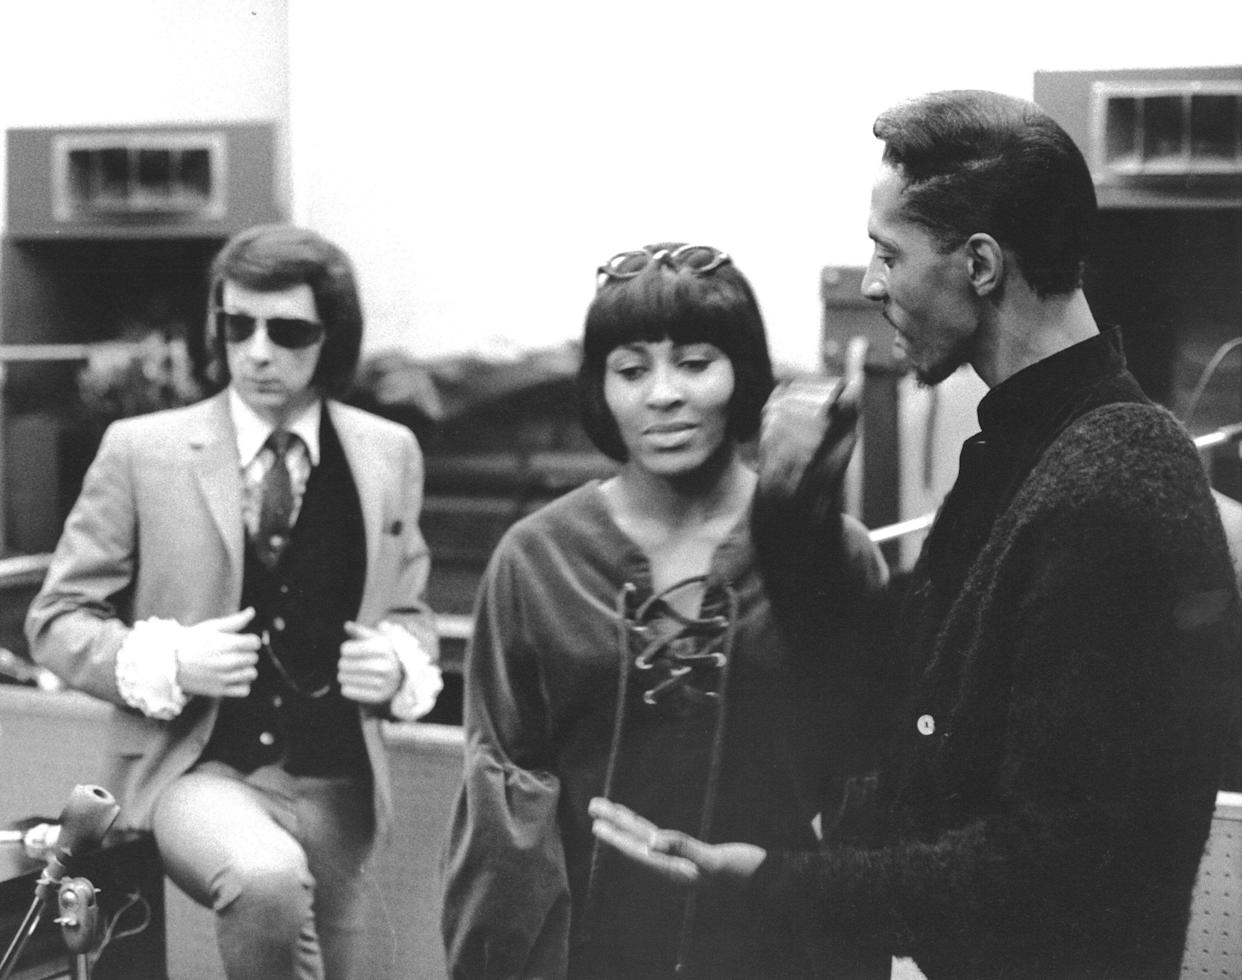 Spector stands behind Ike and Tina Turner at Gold Star Studios in Los Angeles in 1966. (Photo: Ray Avery via Getty Images)